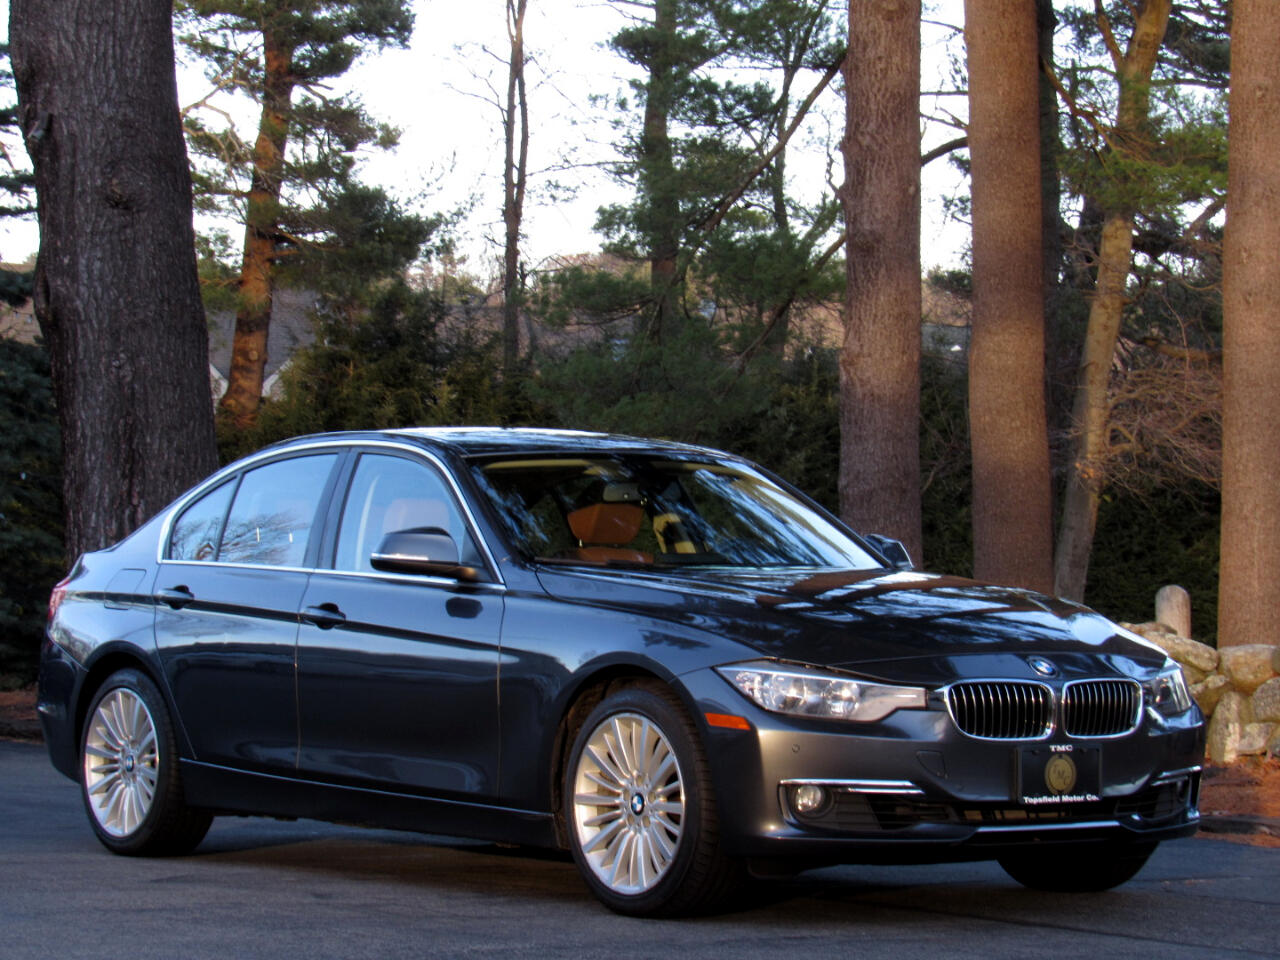 2013 BMW 3-Series 328i xDrive Luxury Sedan